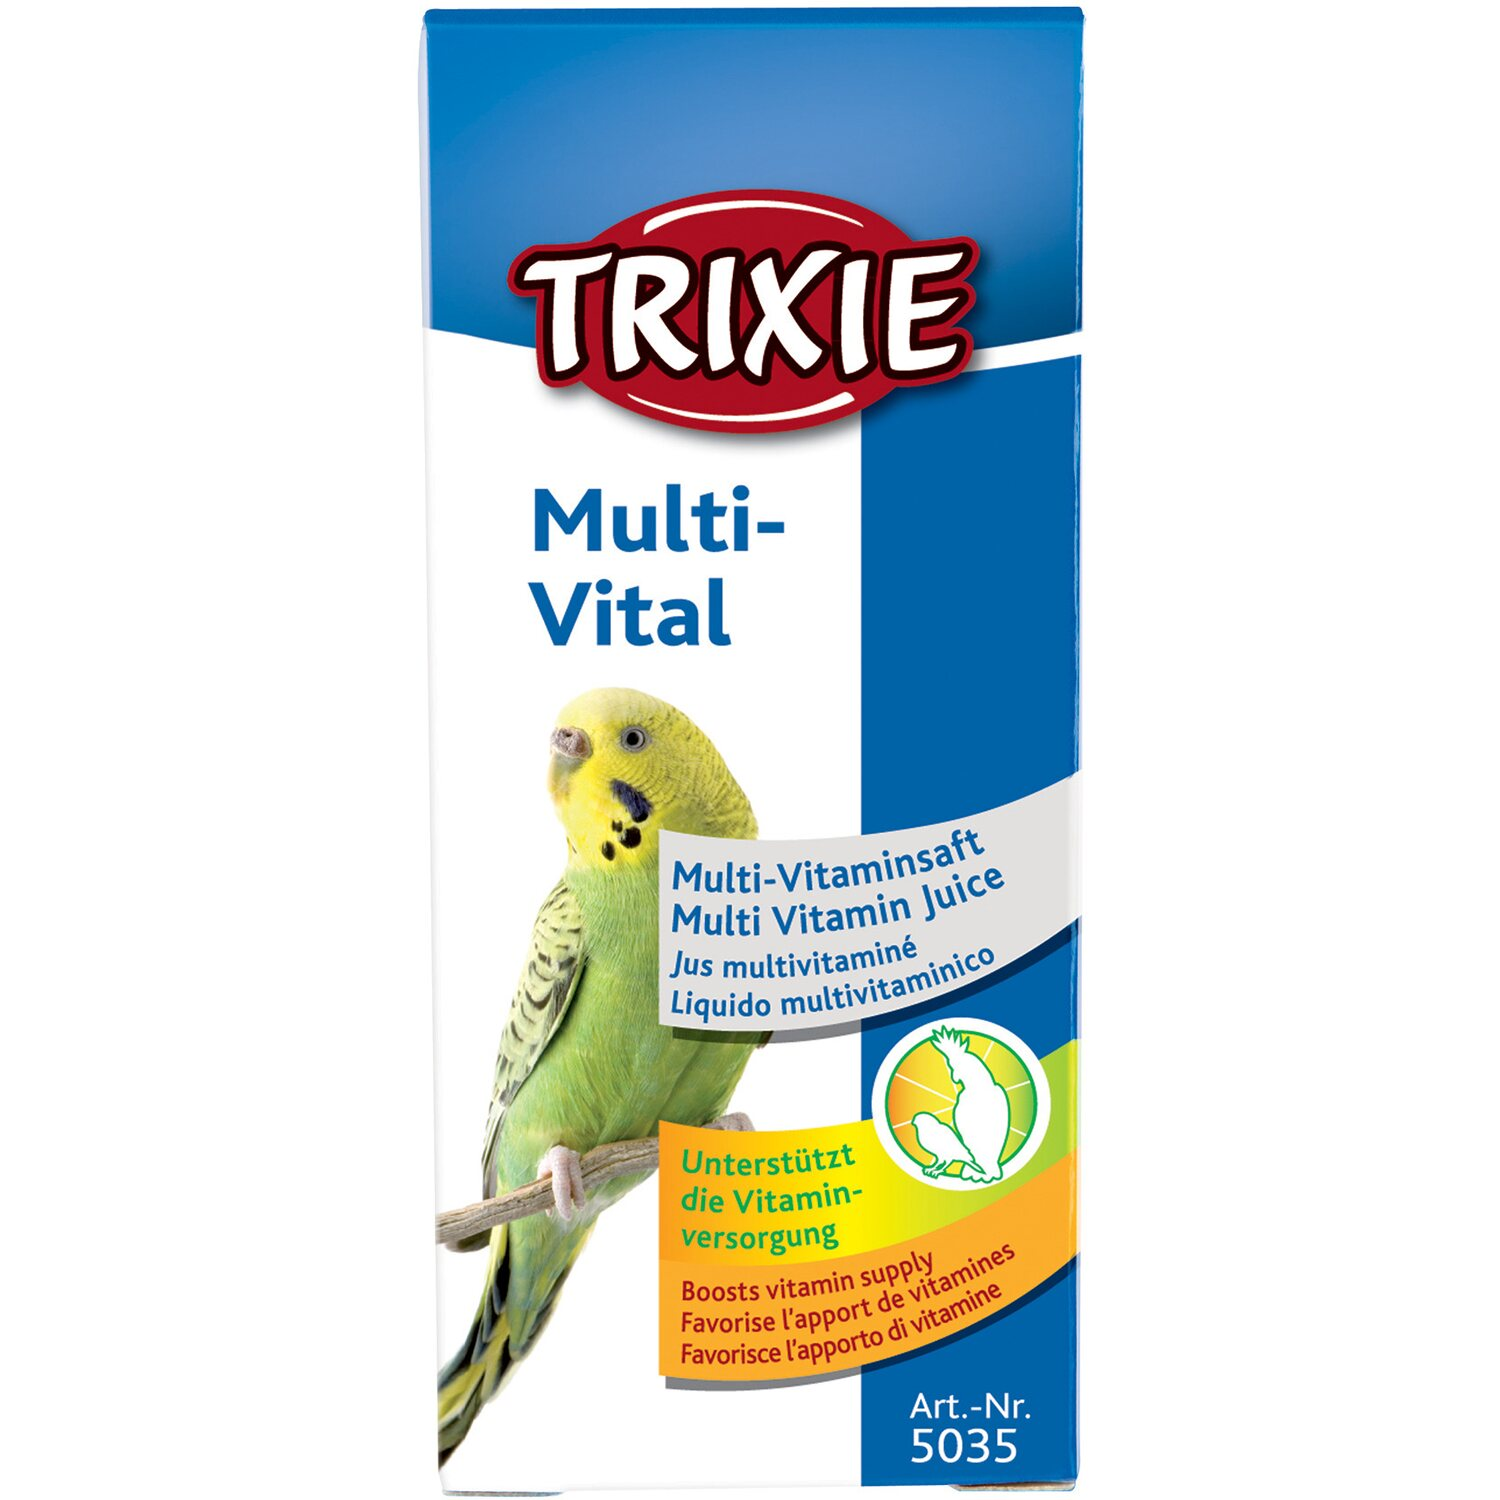 Trixie Multi-Vital Vögel 50 ml